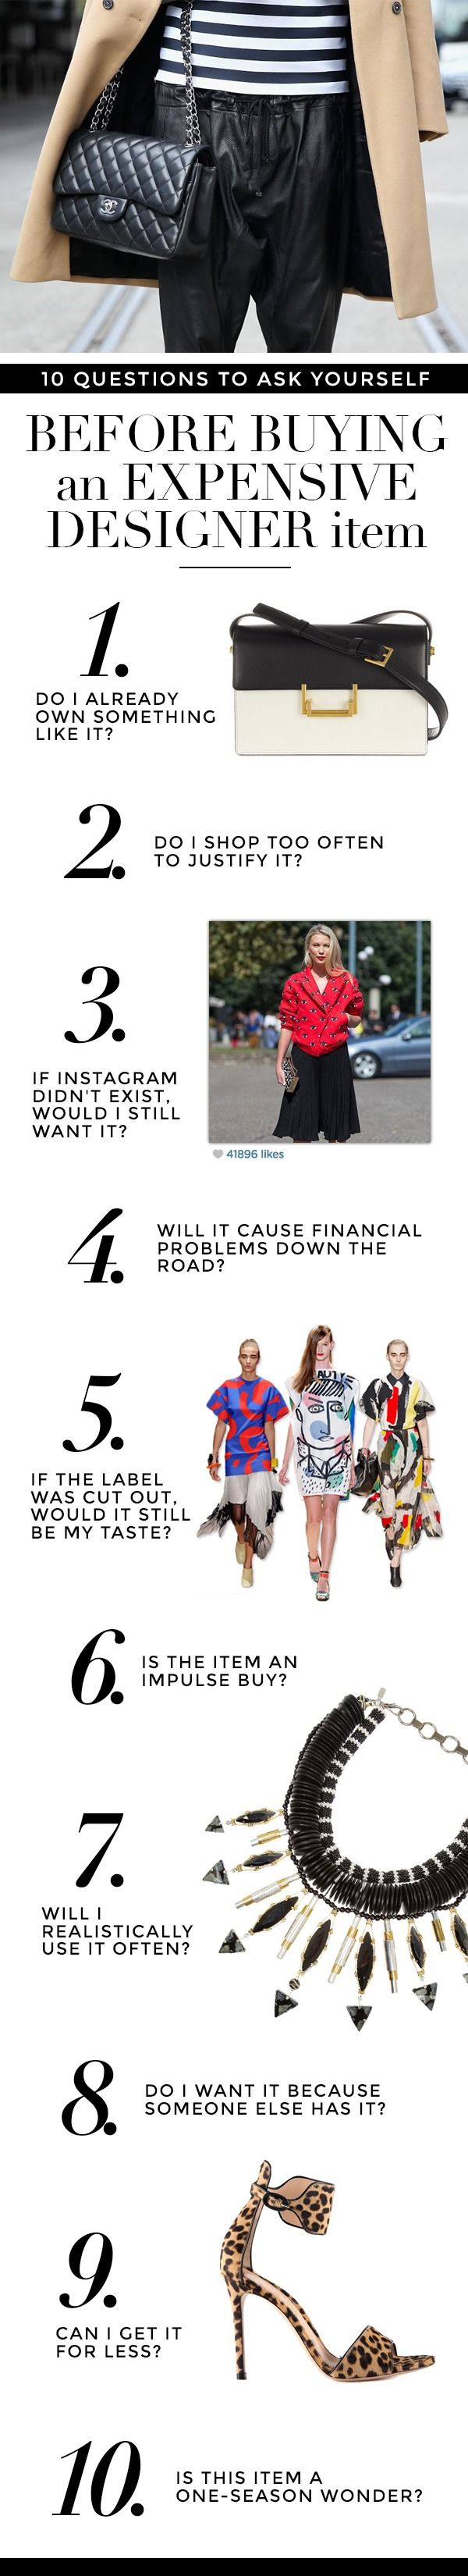 10 Questions to ask yourself before buying a pricey designer item|StyleCaster